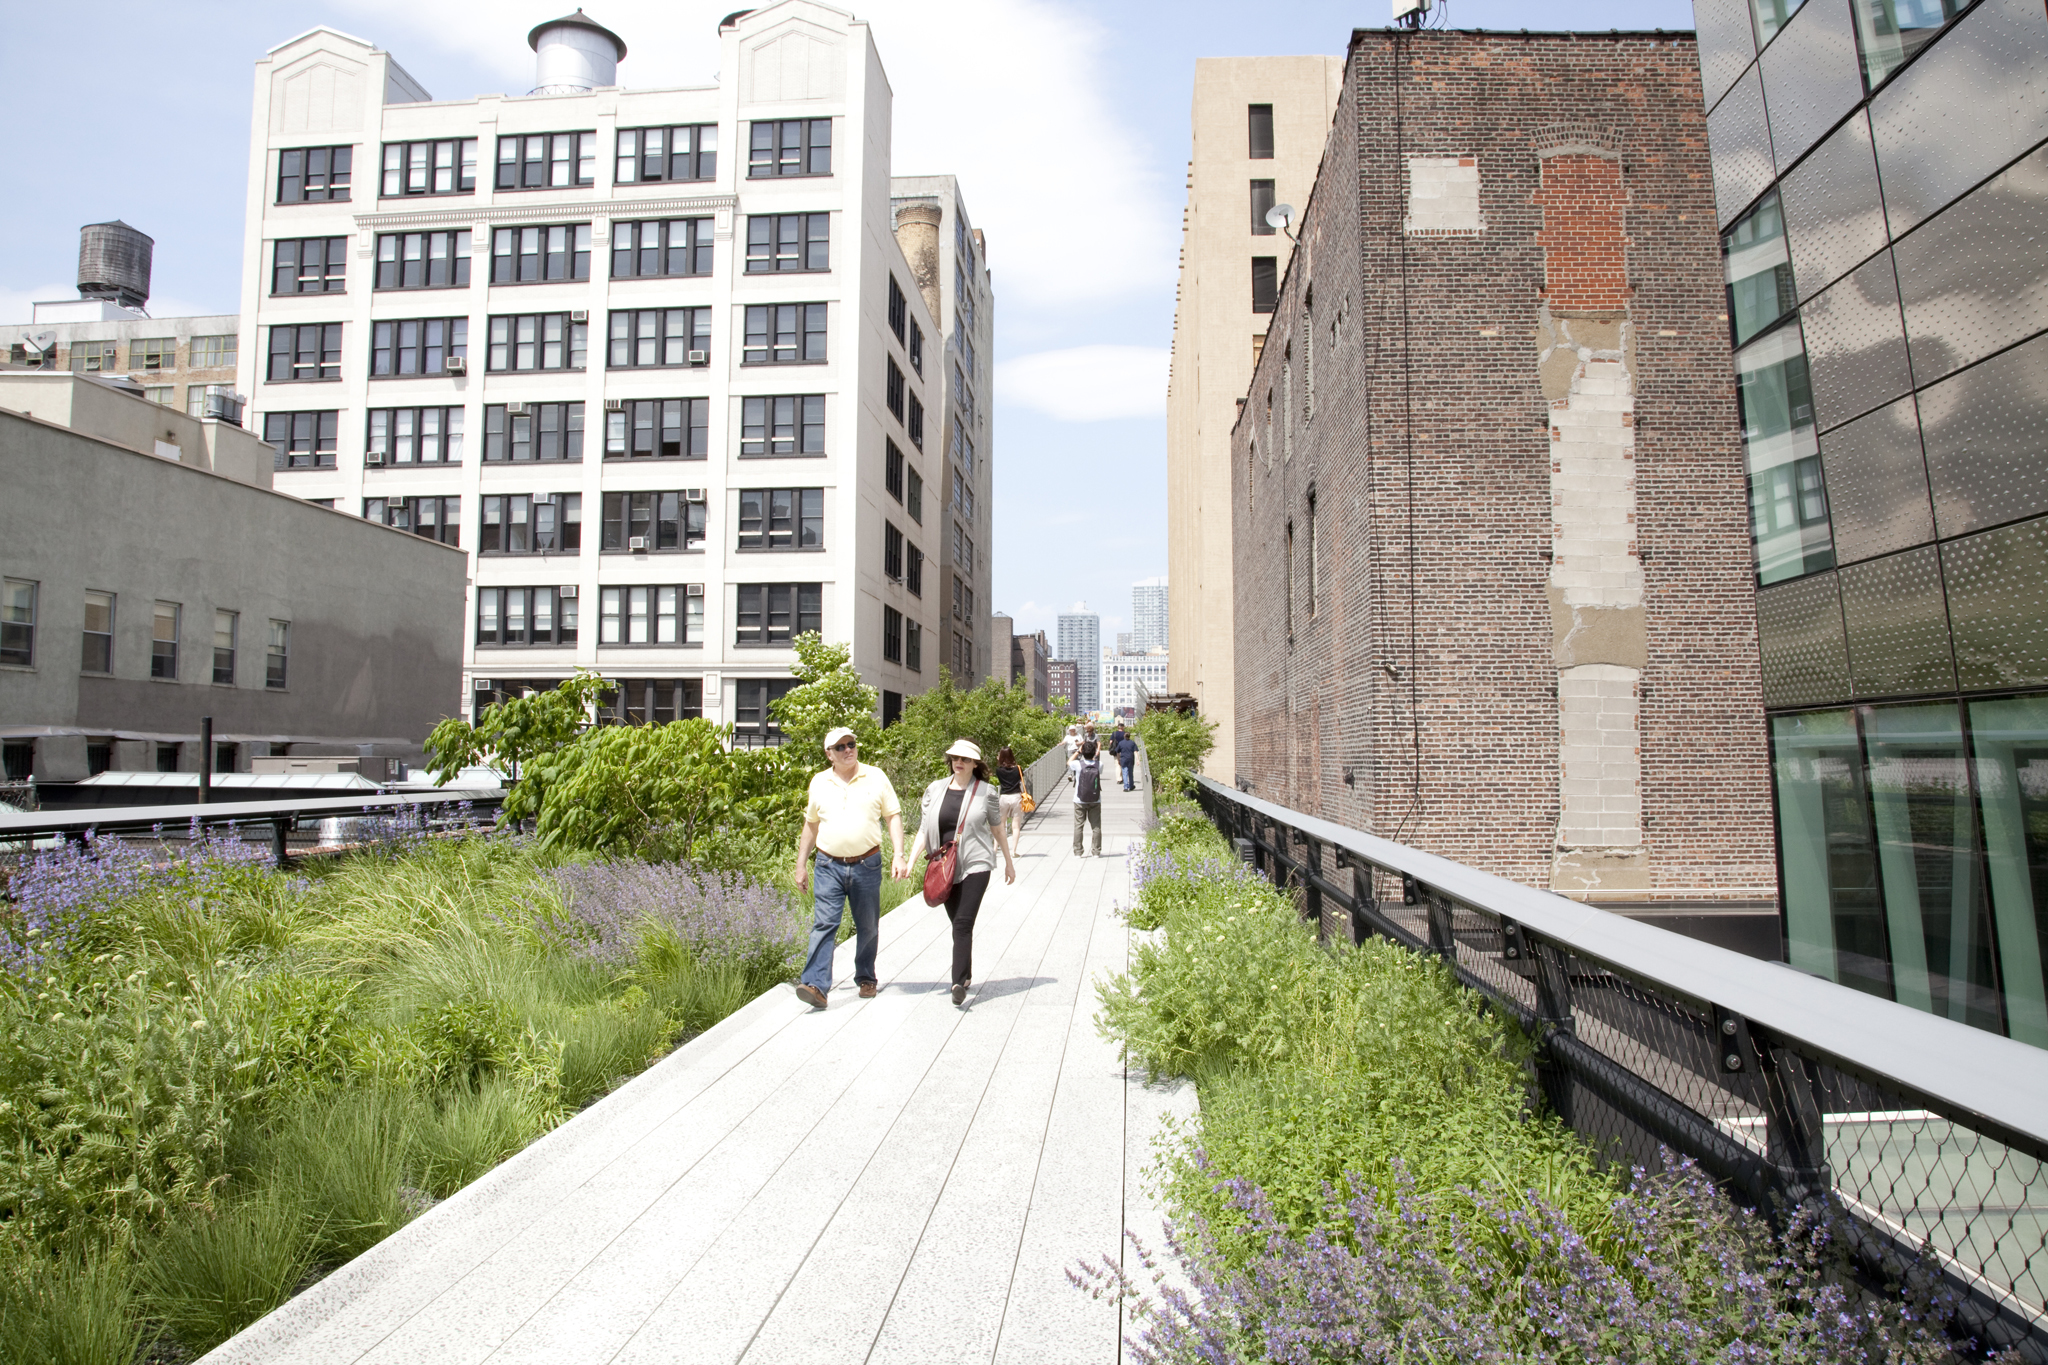 High Line map for sightseeing around the park